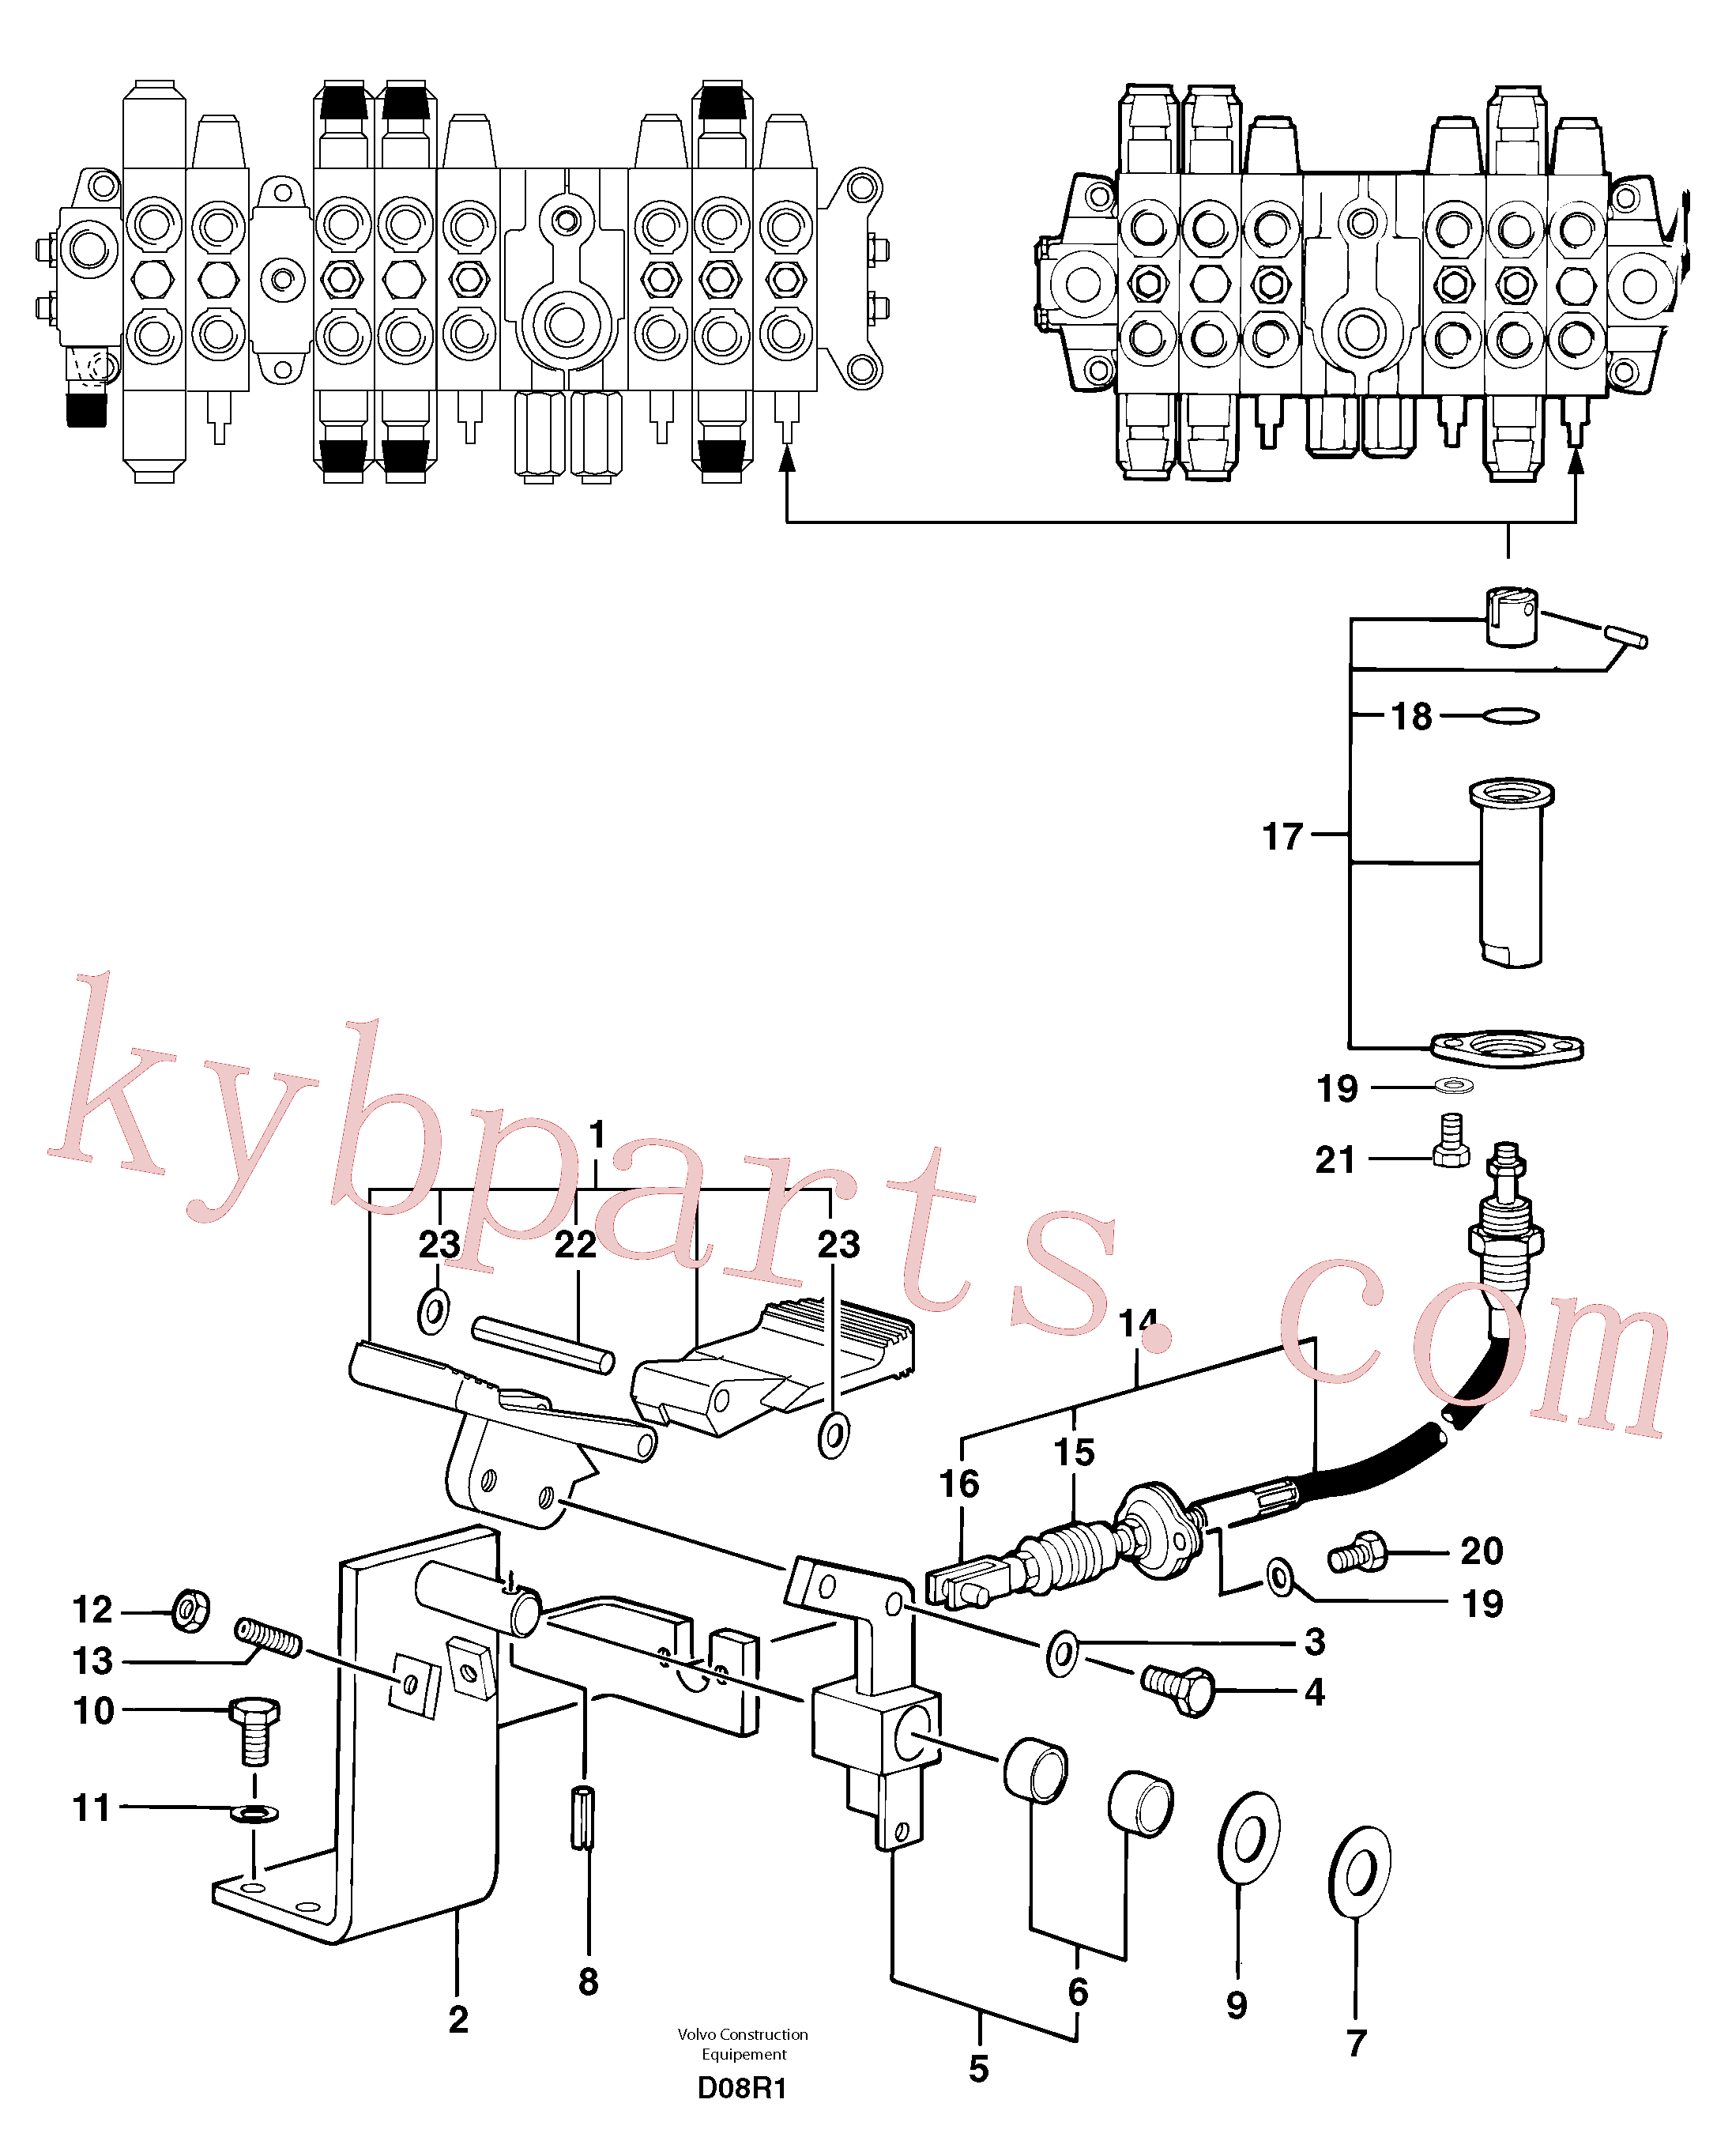 PJ7412468 for Volvo Control pedal : accessories on attachment - 75 l/m(D08R1 assembly)